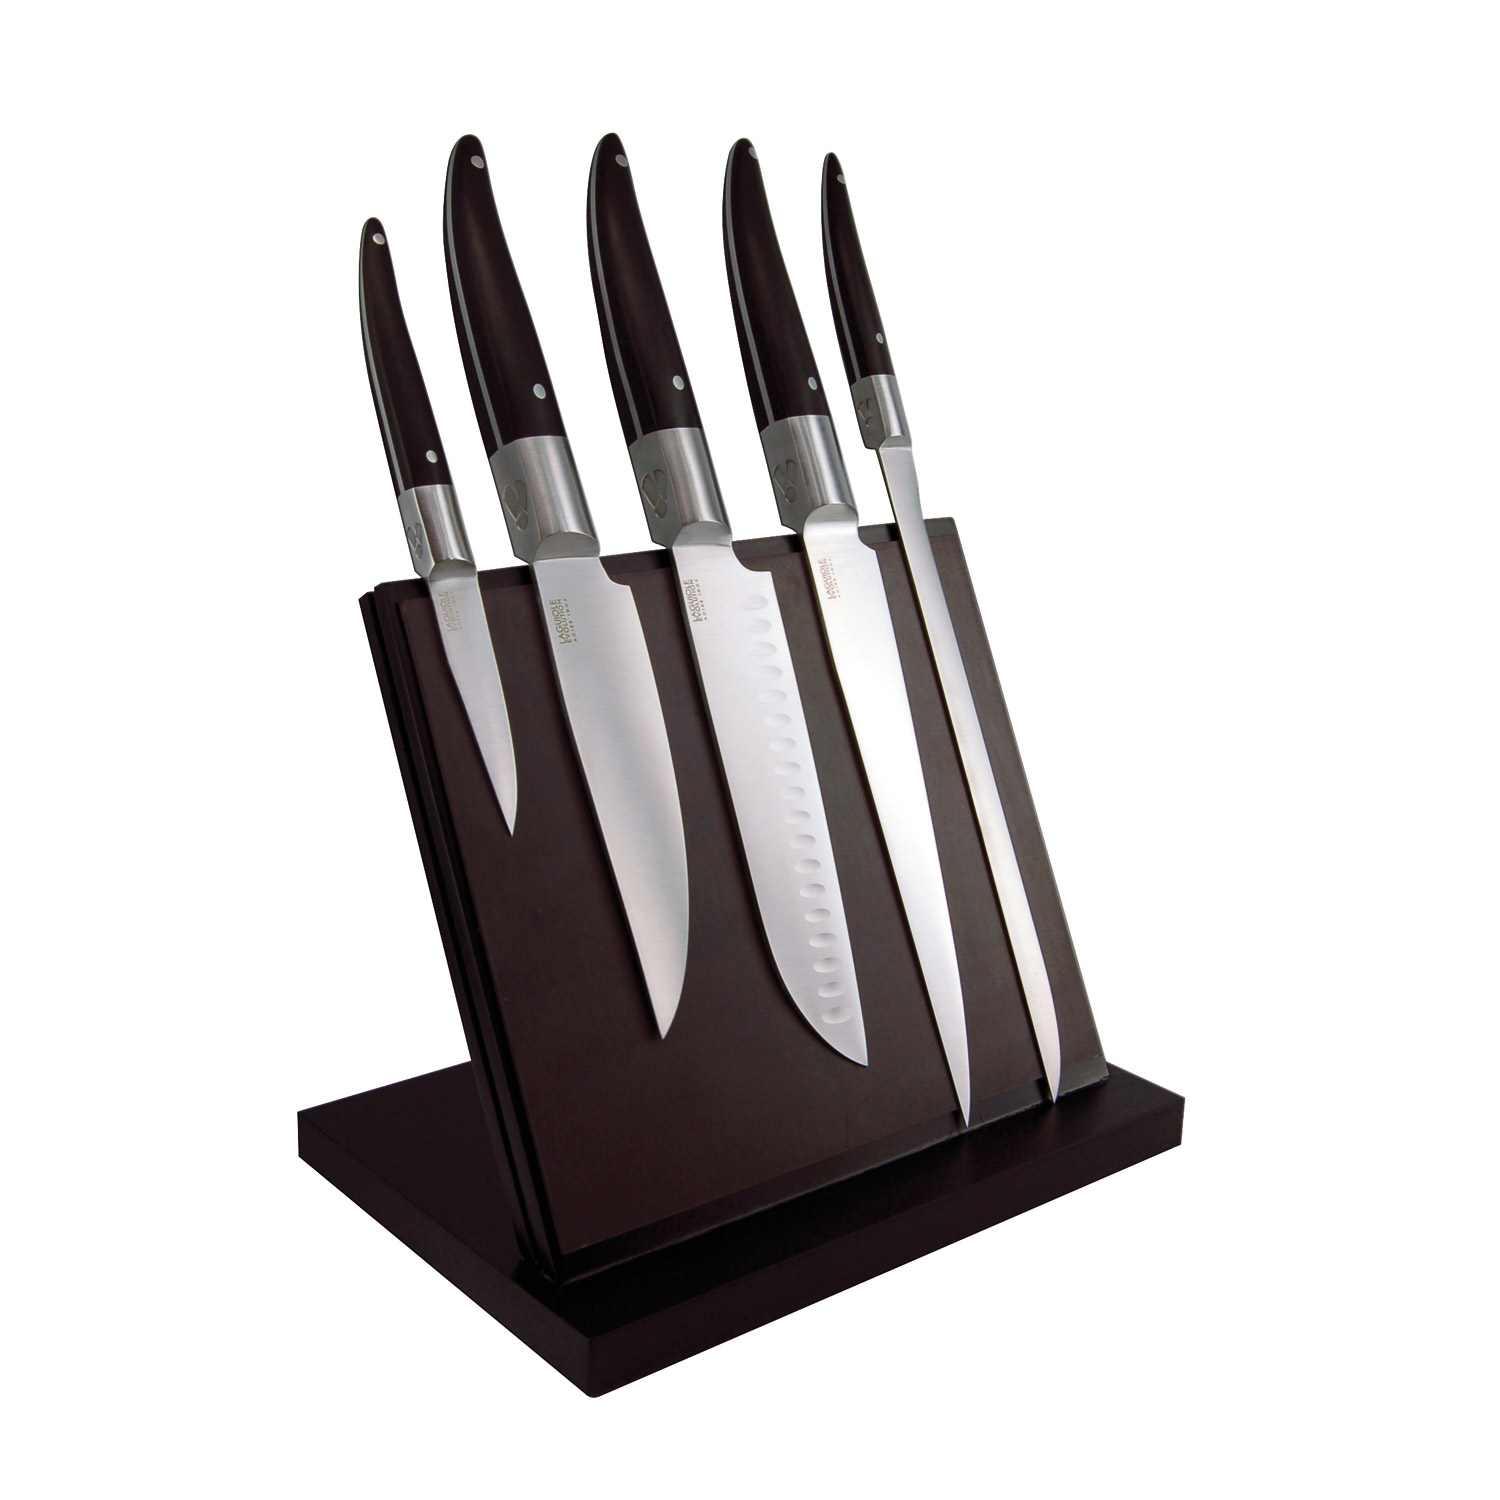 Modern Kitchen Knives laguiole expression kitchen knives // set of 5 - tarrerias-bonjean